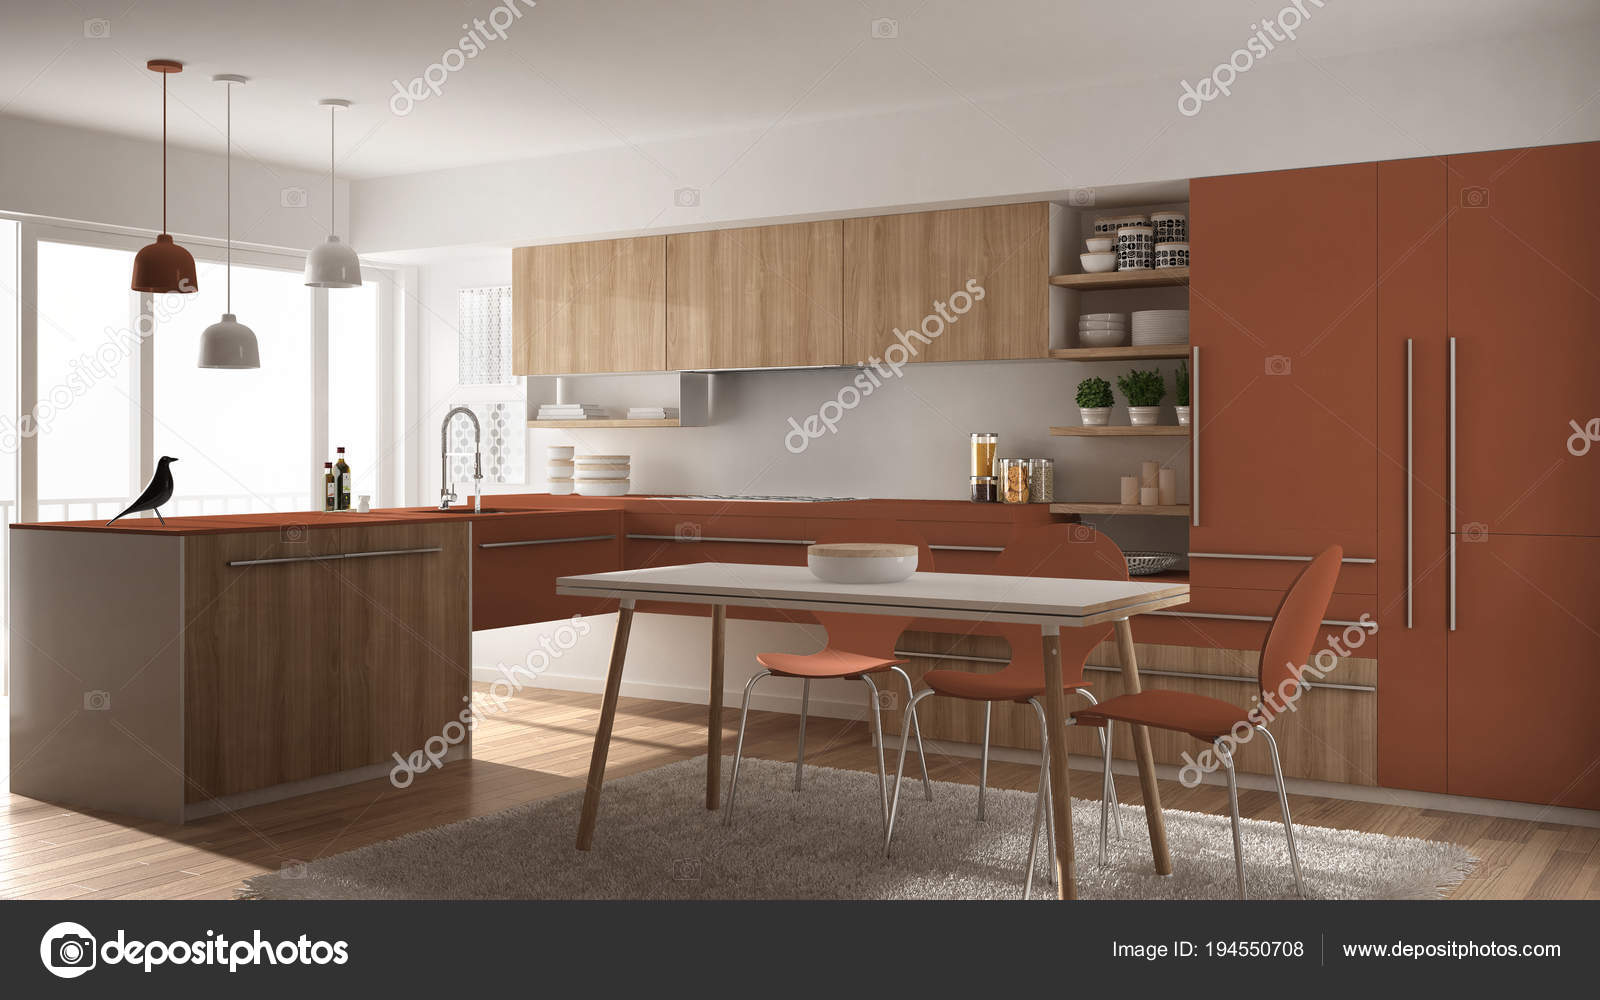 Modern Minimalistic Wooden Kitchen With Dining Table Carpet And